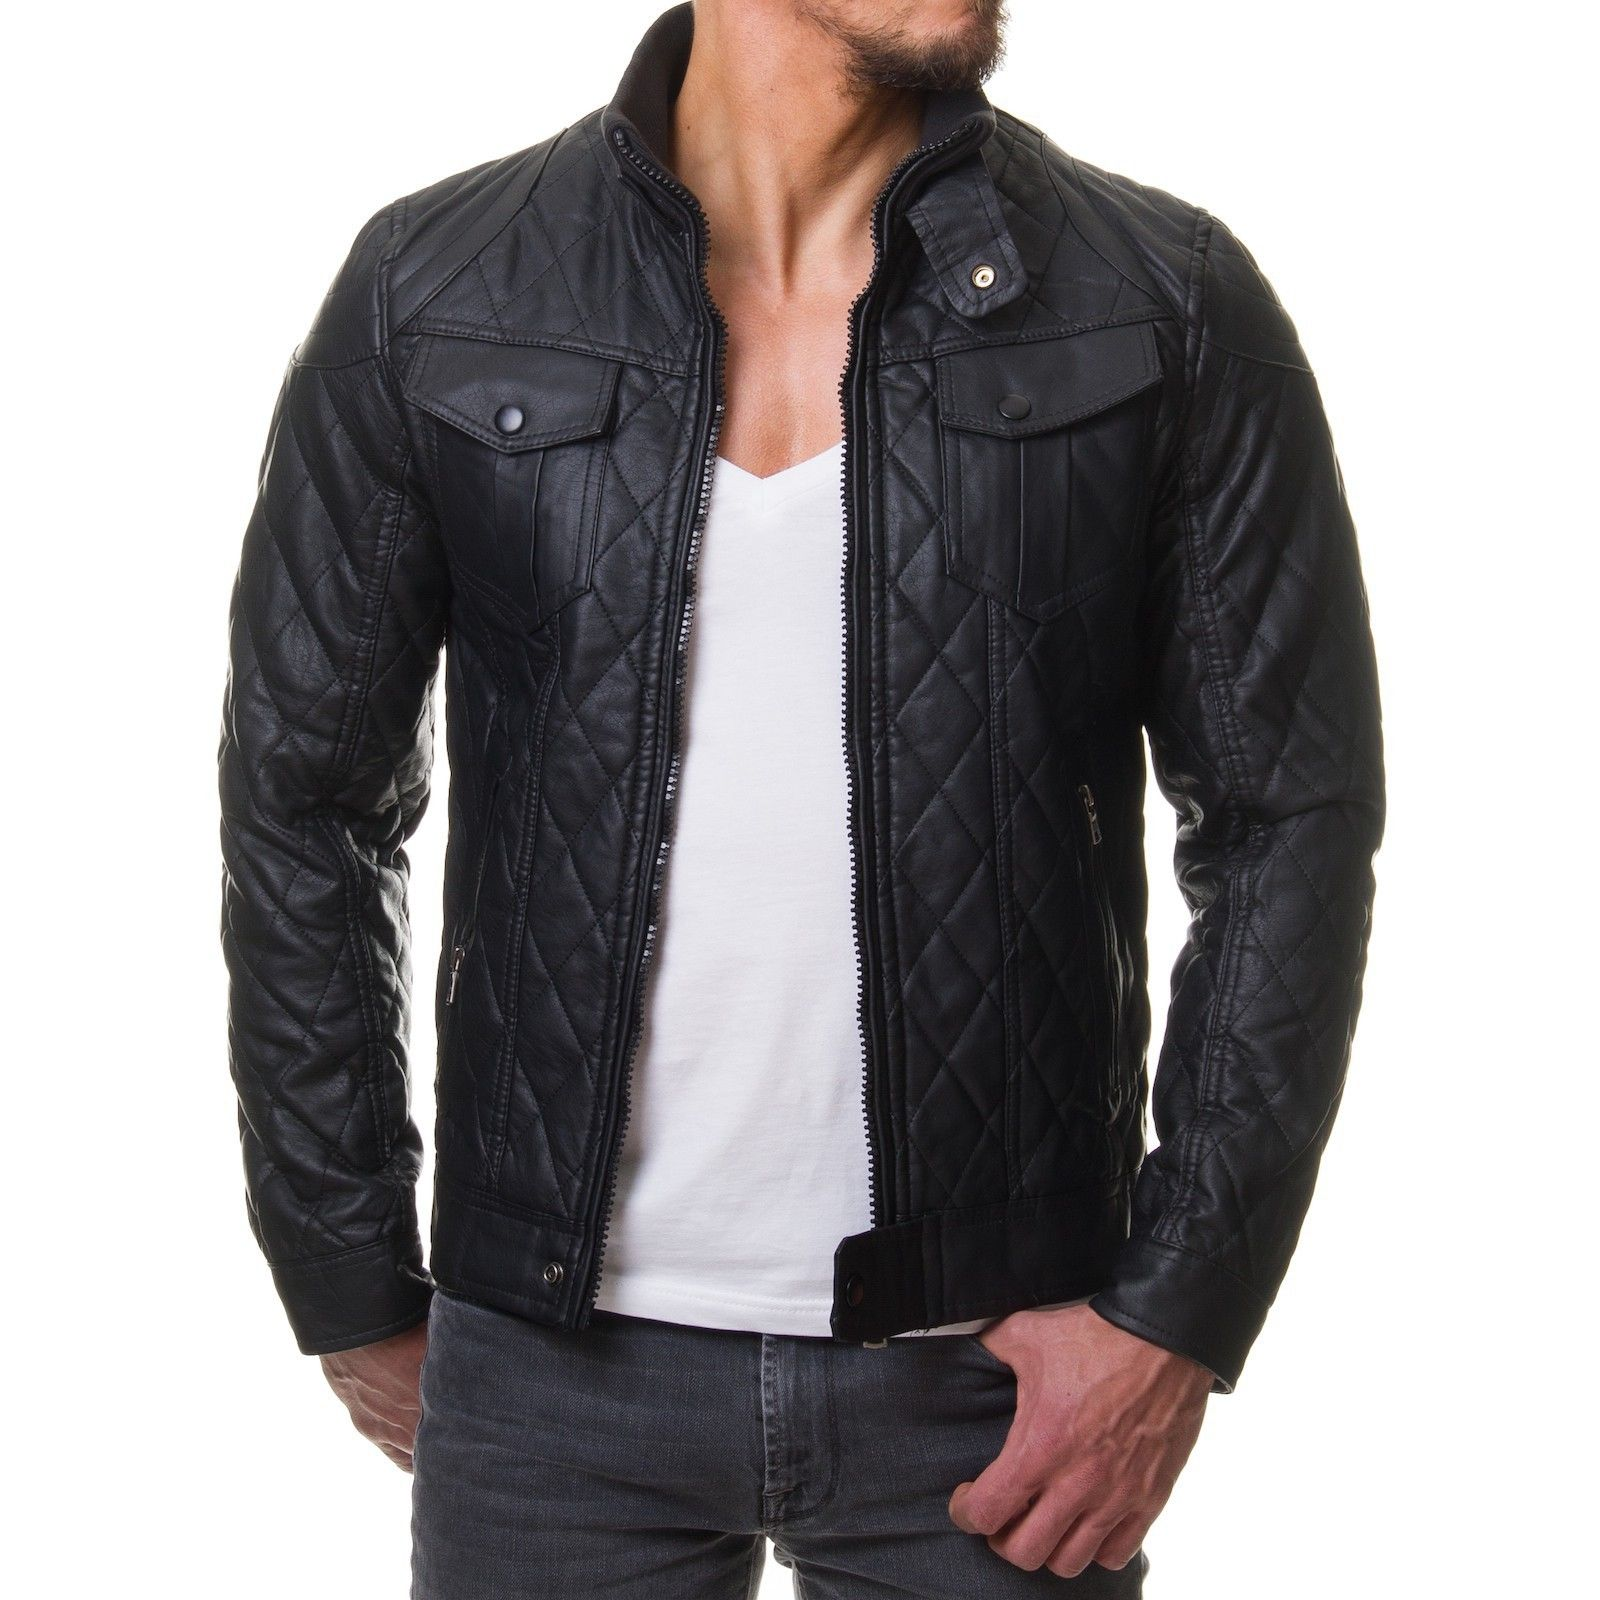 Veste Simili Cuir Fashion Homme